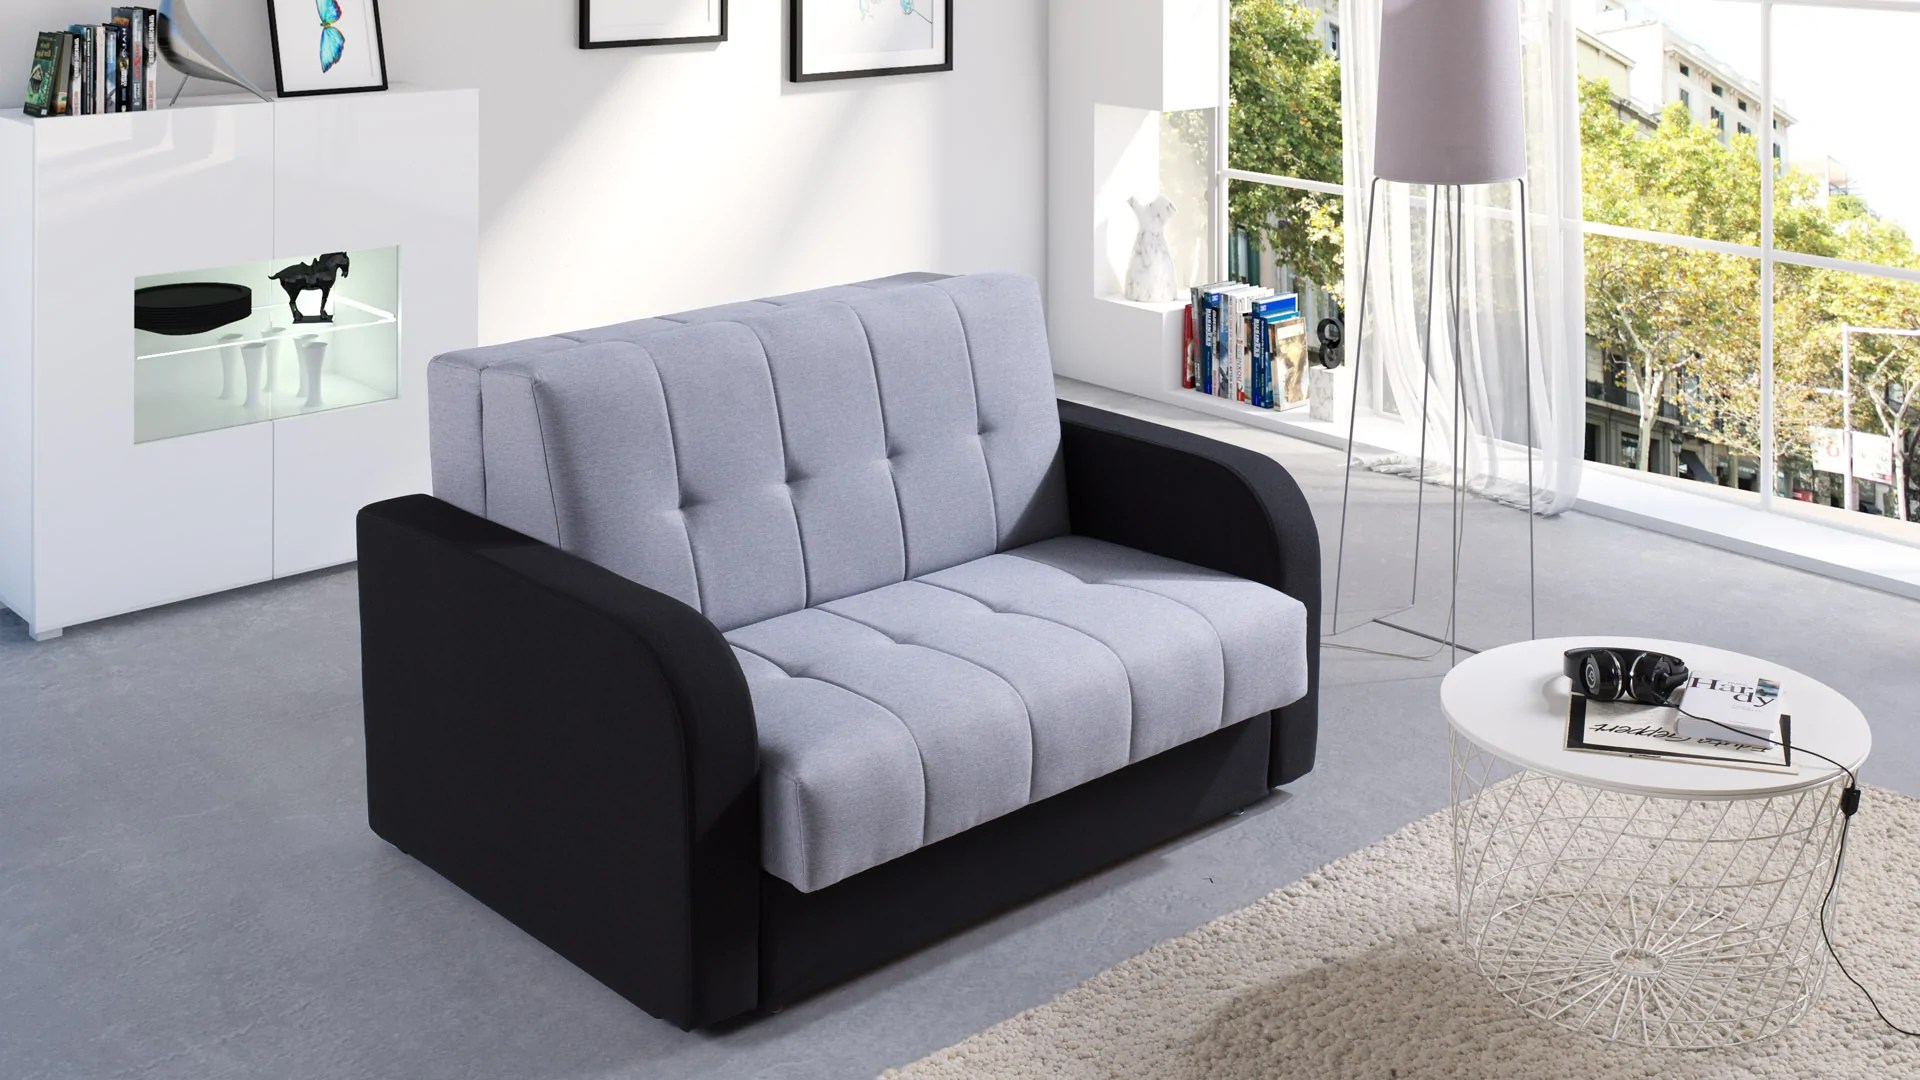 square sofa beds wood carving furniture bed aberdeen